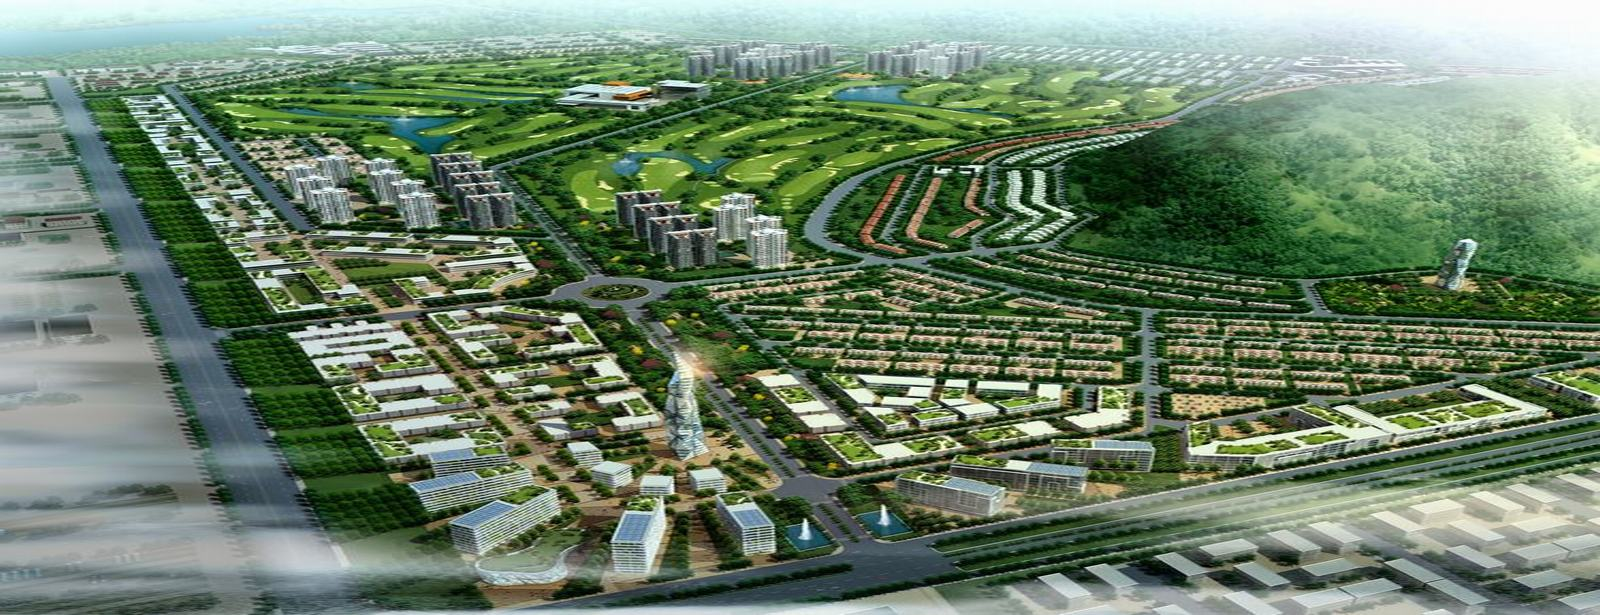 CHAU DUC URBAN INDUSTRIAL PARK & GOLF COURSE